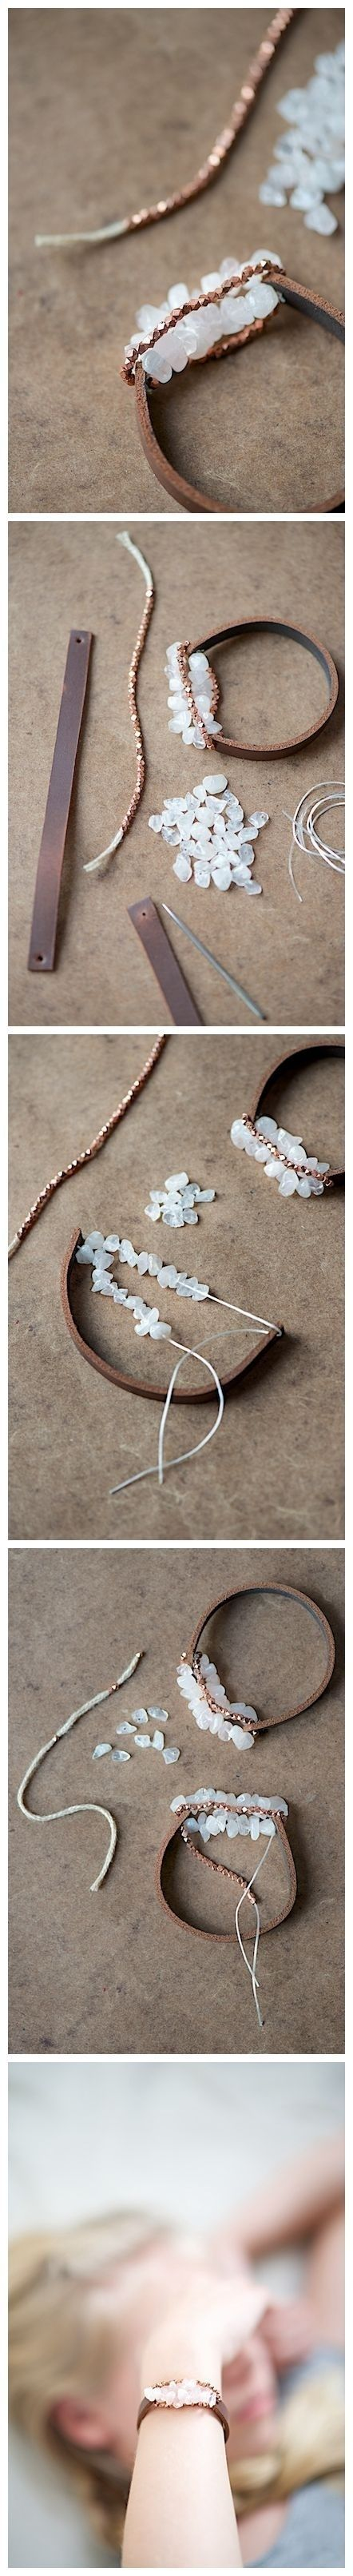 Liven up your arm party with these unique pieces! Easy to make, adorable to wear!